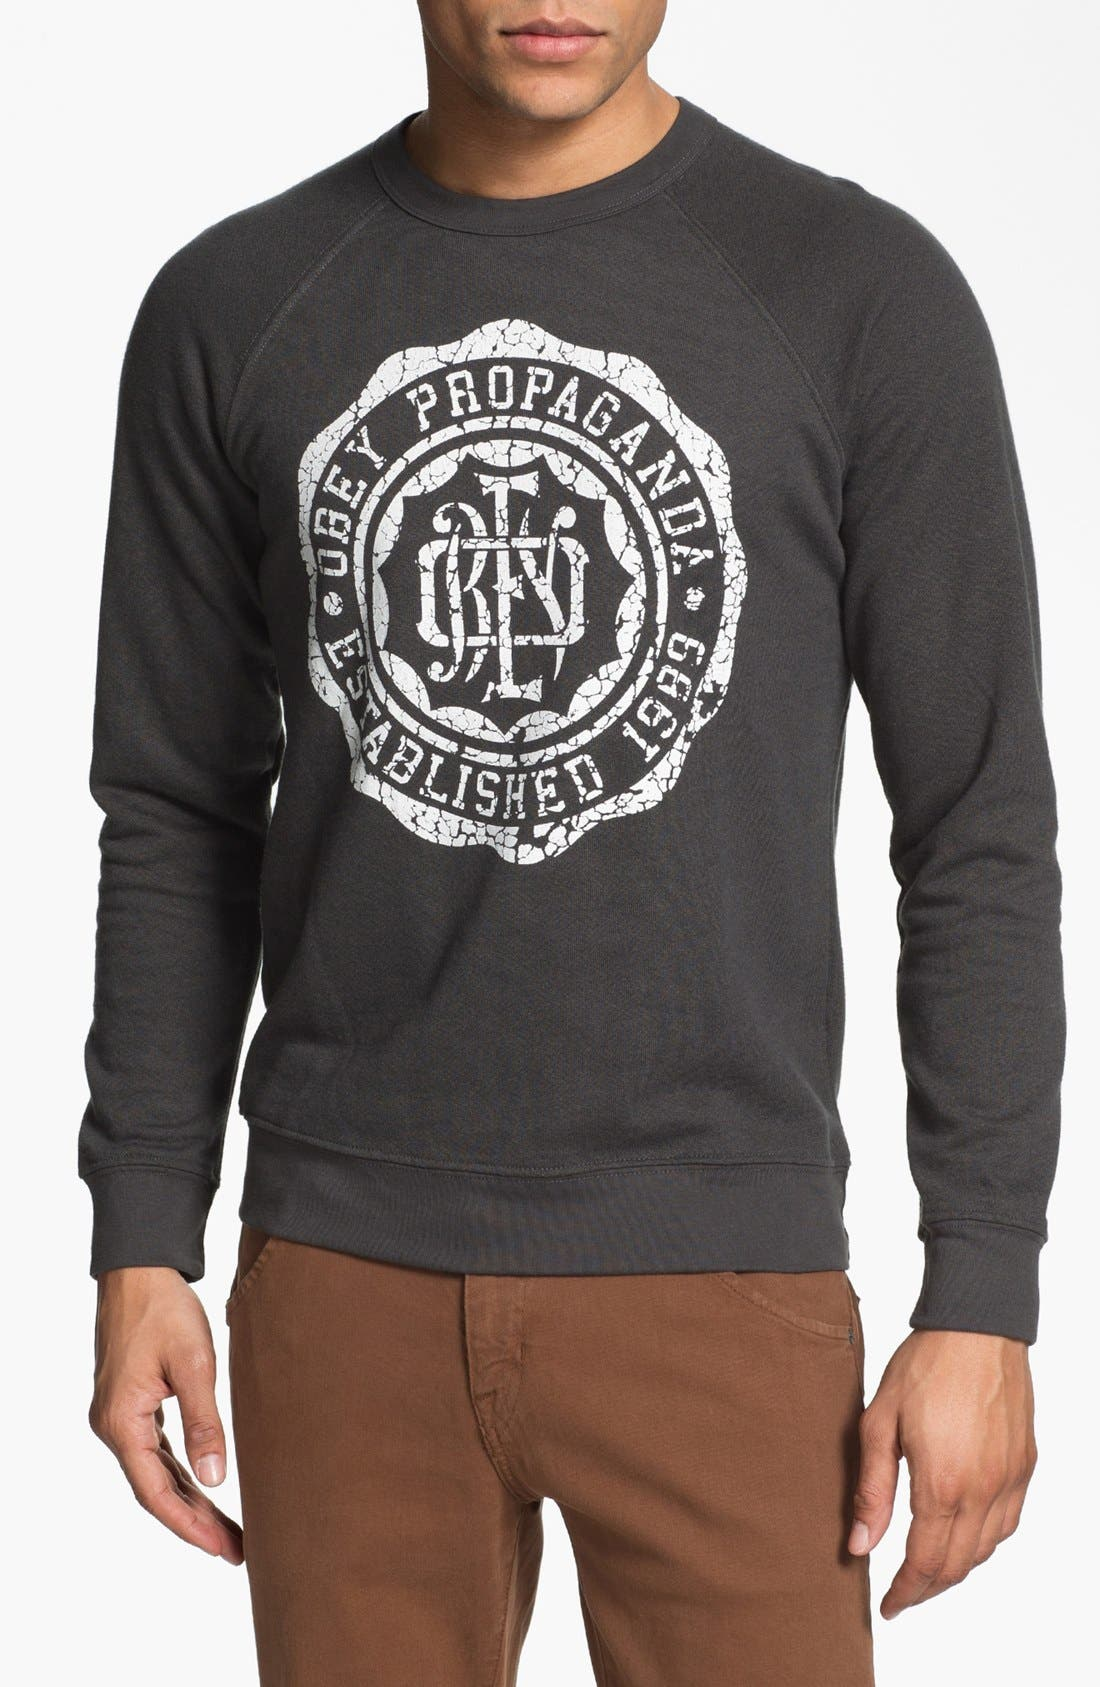 Alternate Image 1 Selected - Obey 'College Crest' Graphic Crewneck Sweatshirt.